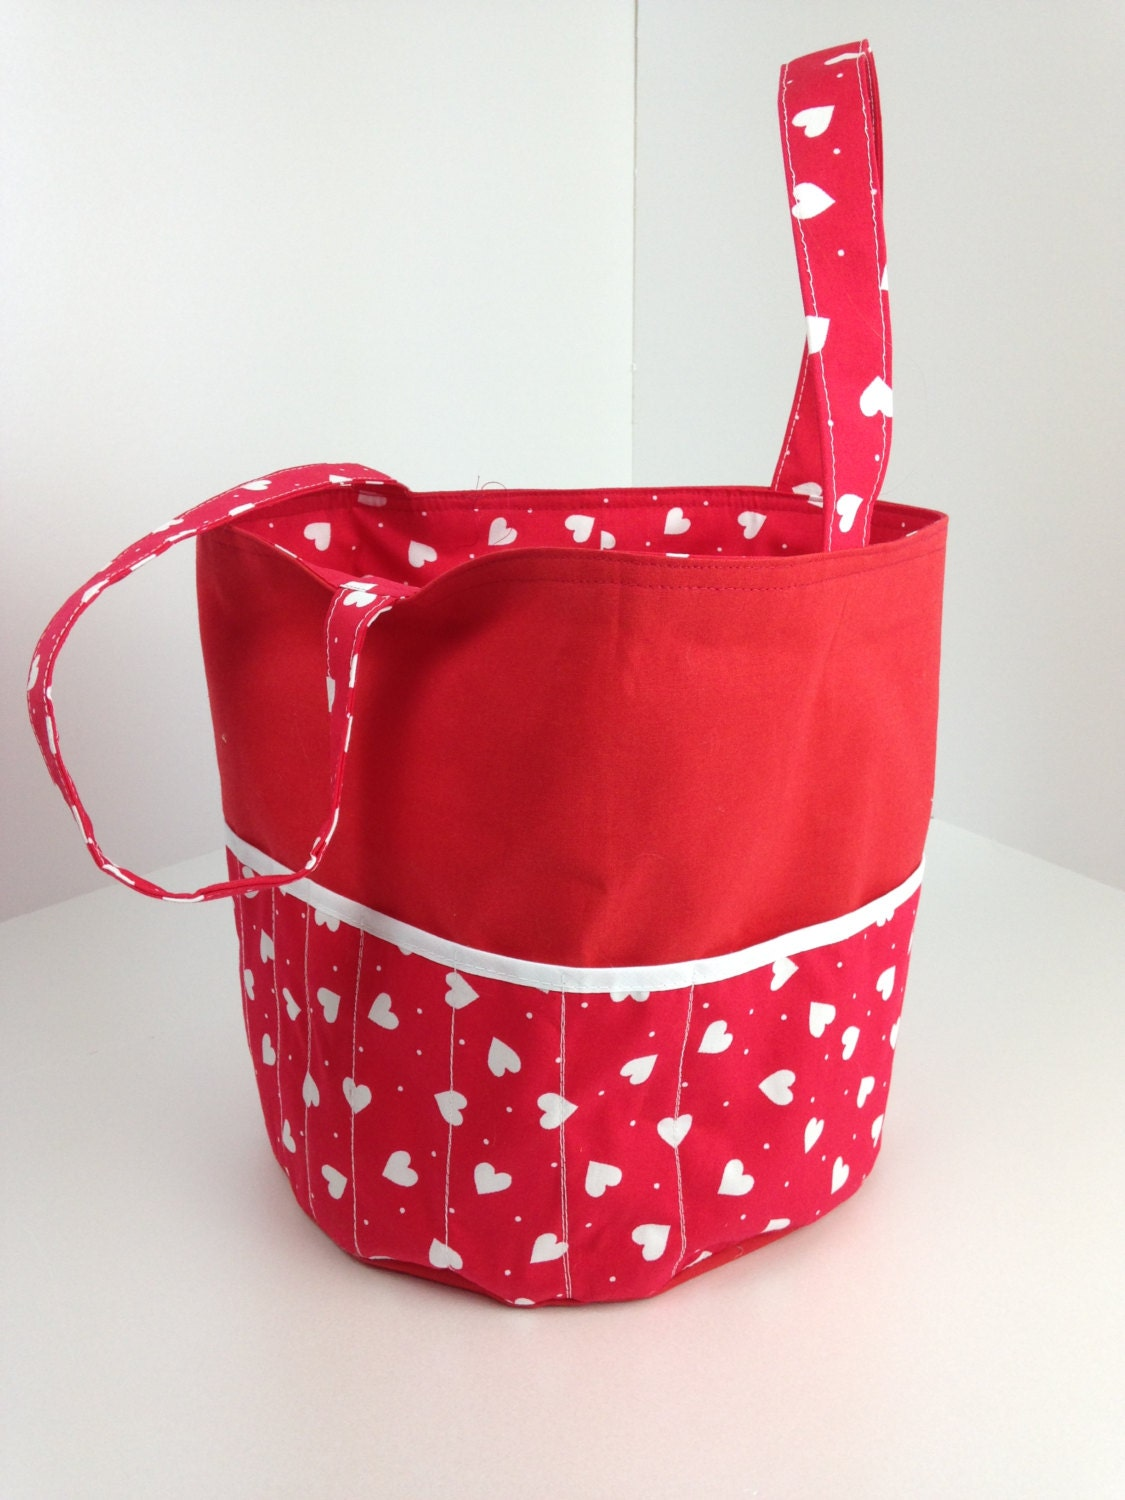 Red Knitting Bag Crocheting Bag Sewing Bag Round Tote